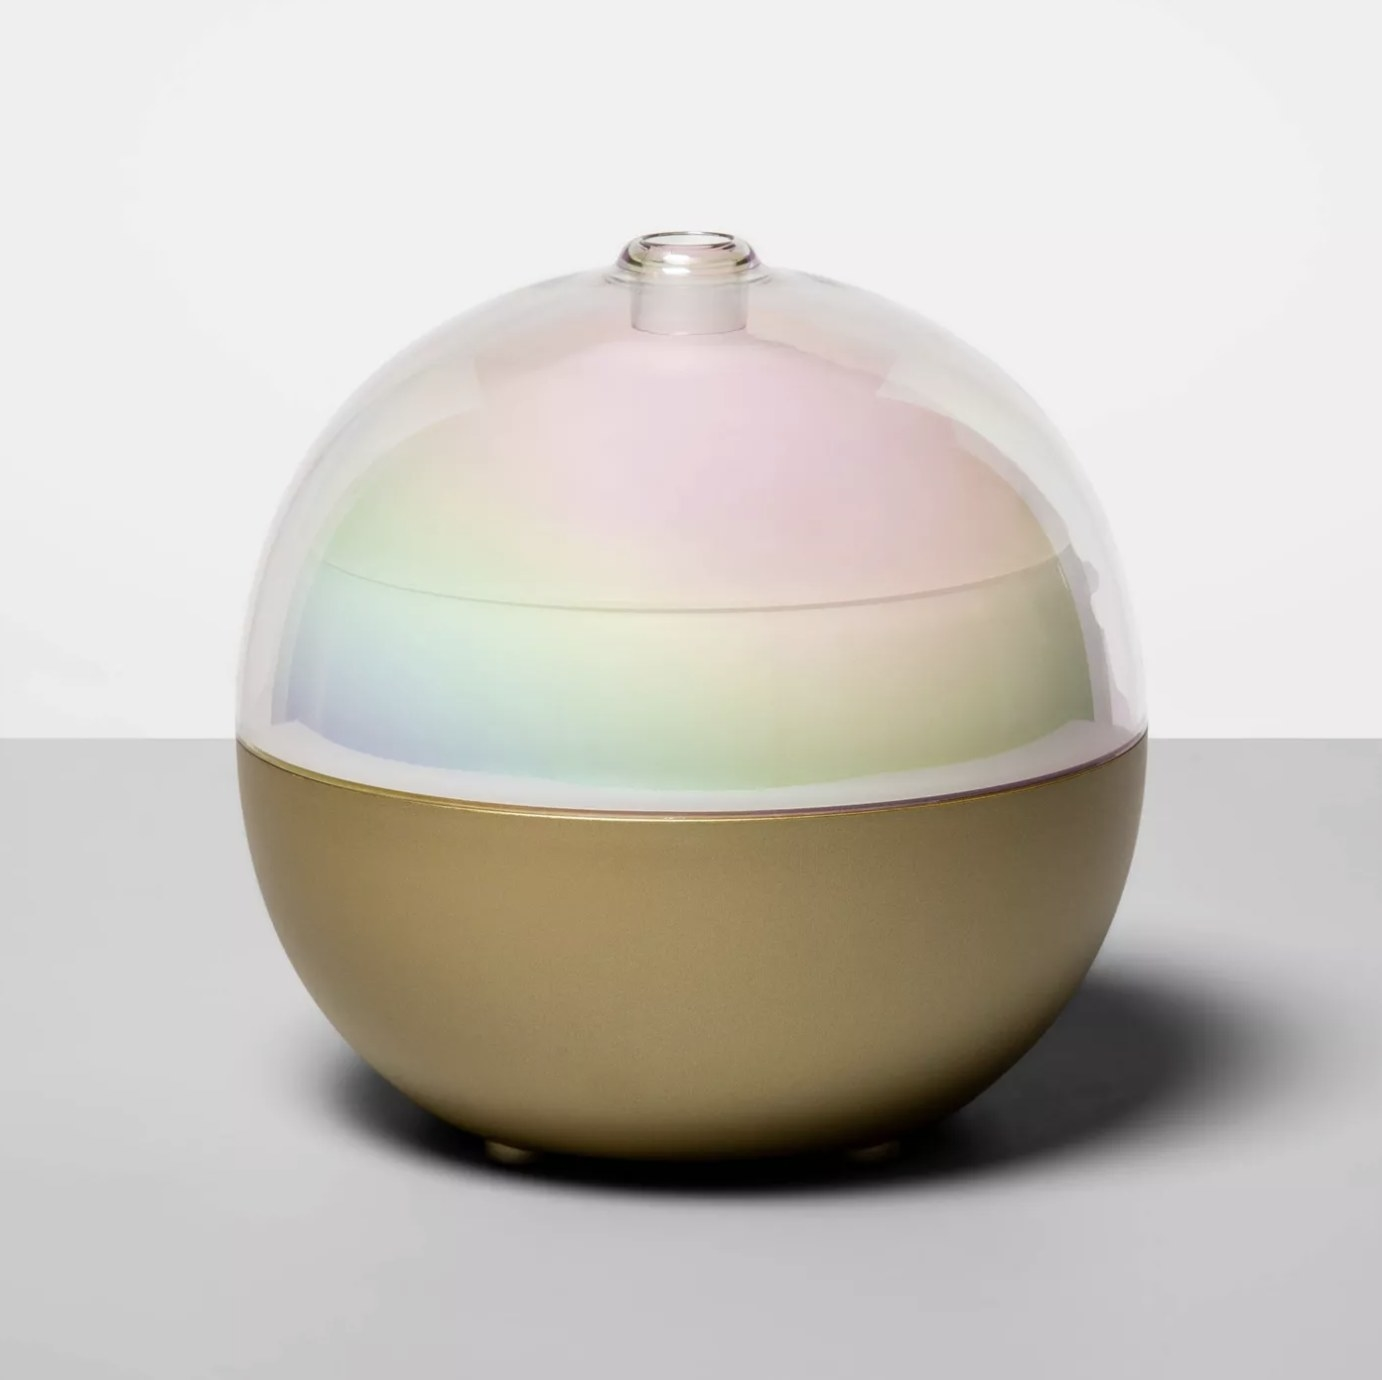 A color-changing oil diffuser with a gold base